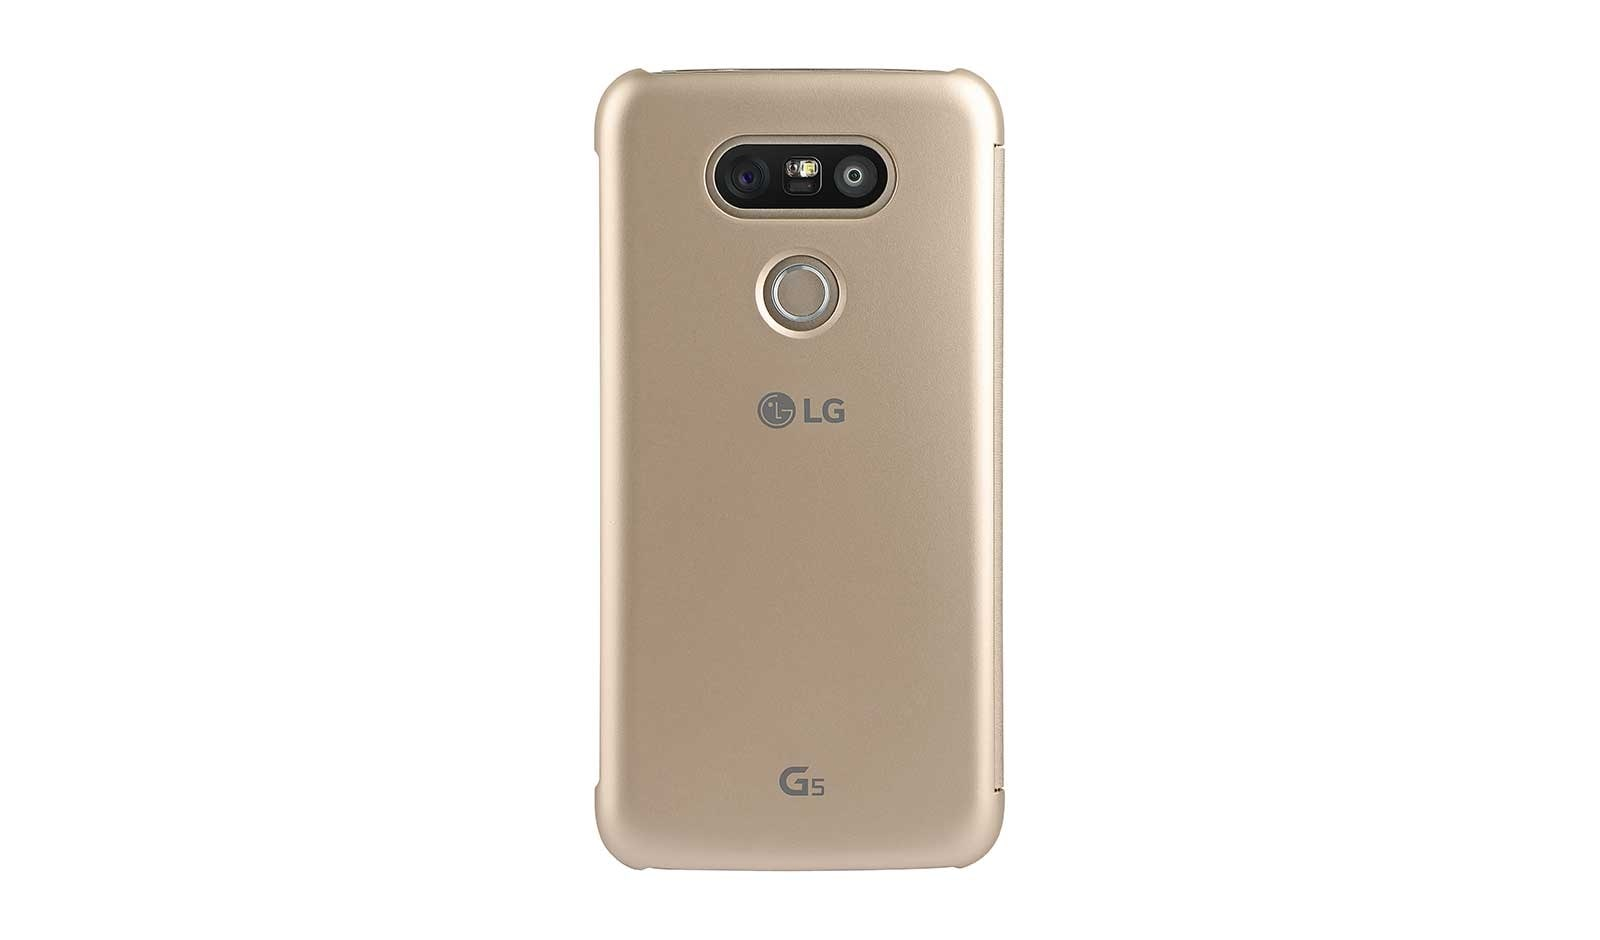 new product 406a4 74486 LG G5 Quick Cover Case - Gold | LG Canada